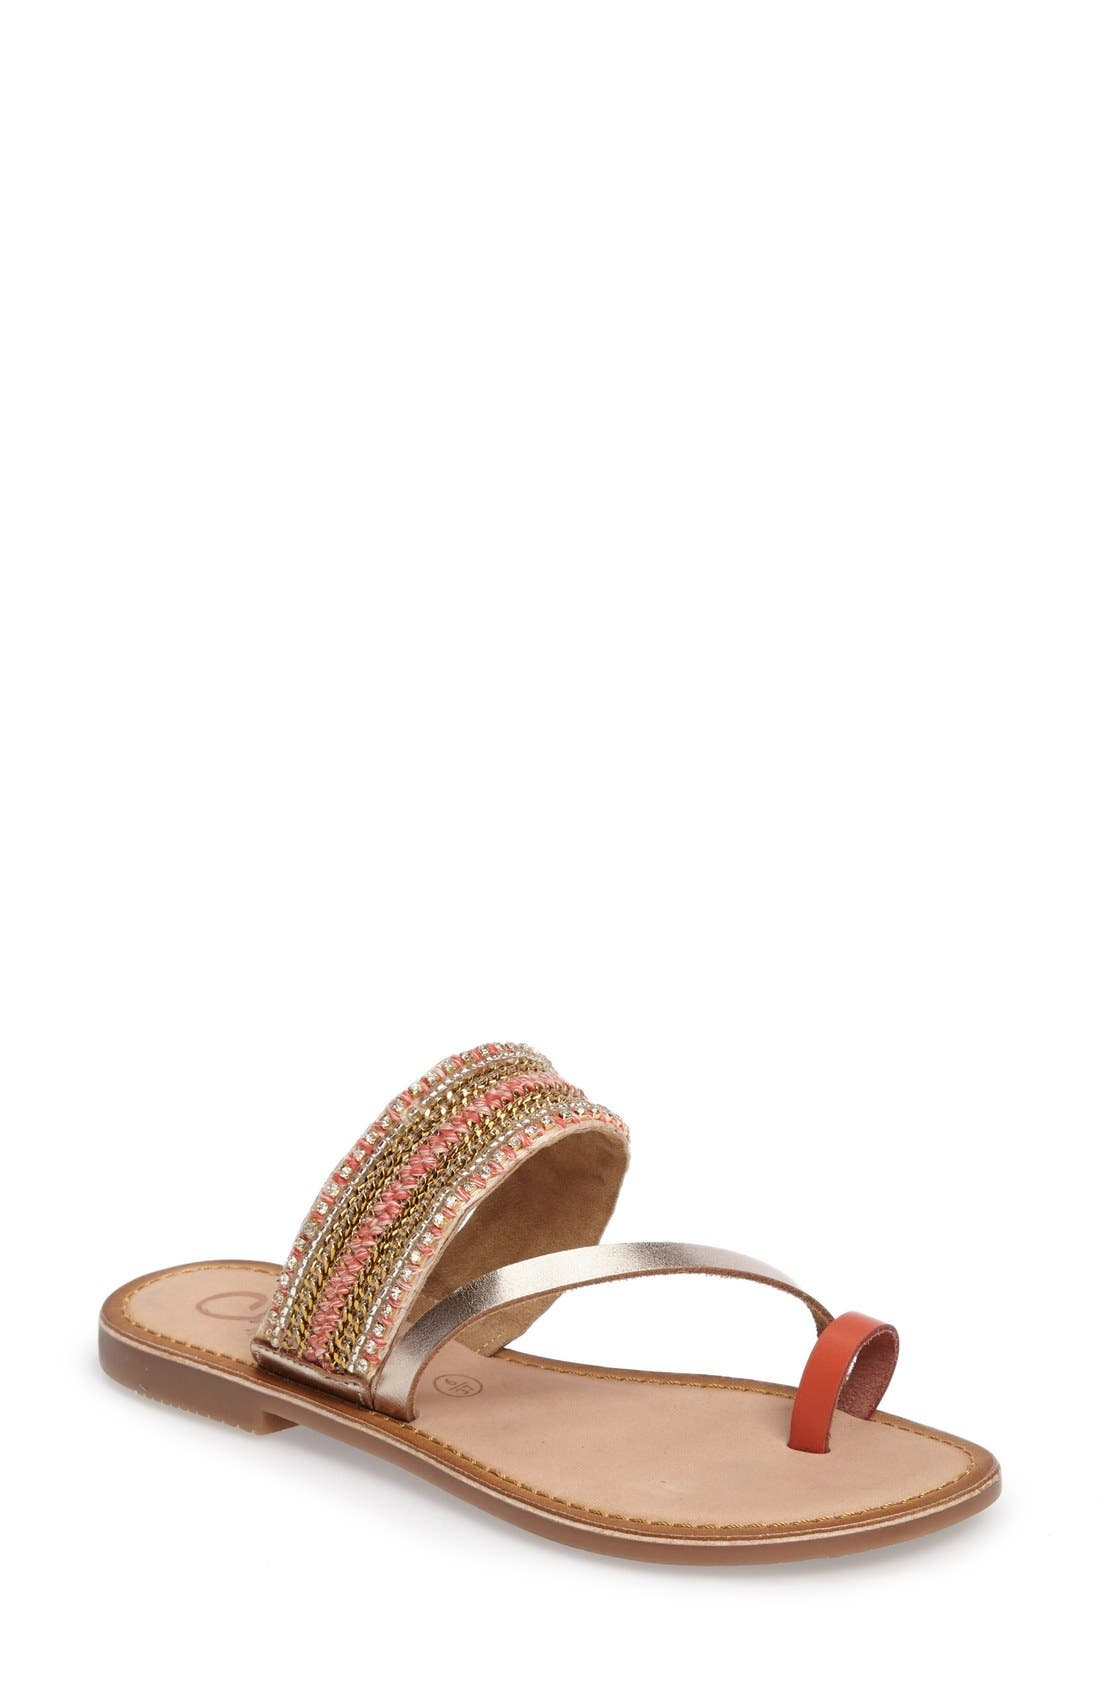 Alternate Image 1 Selected - Callisto Karii Sandal (Women)